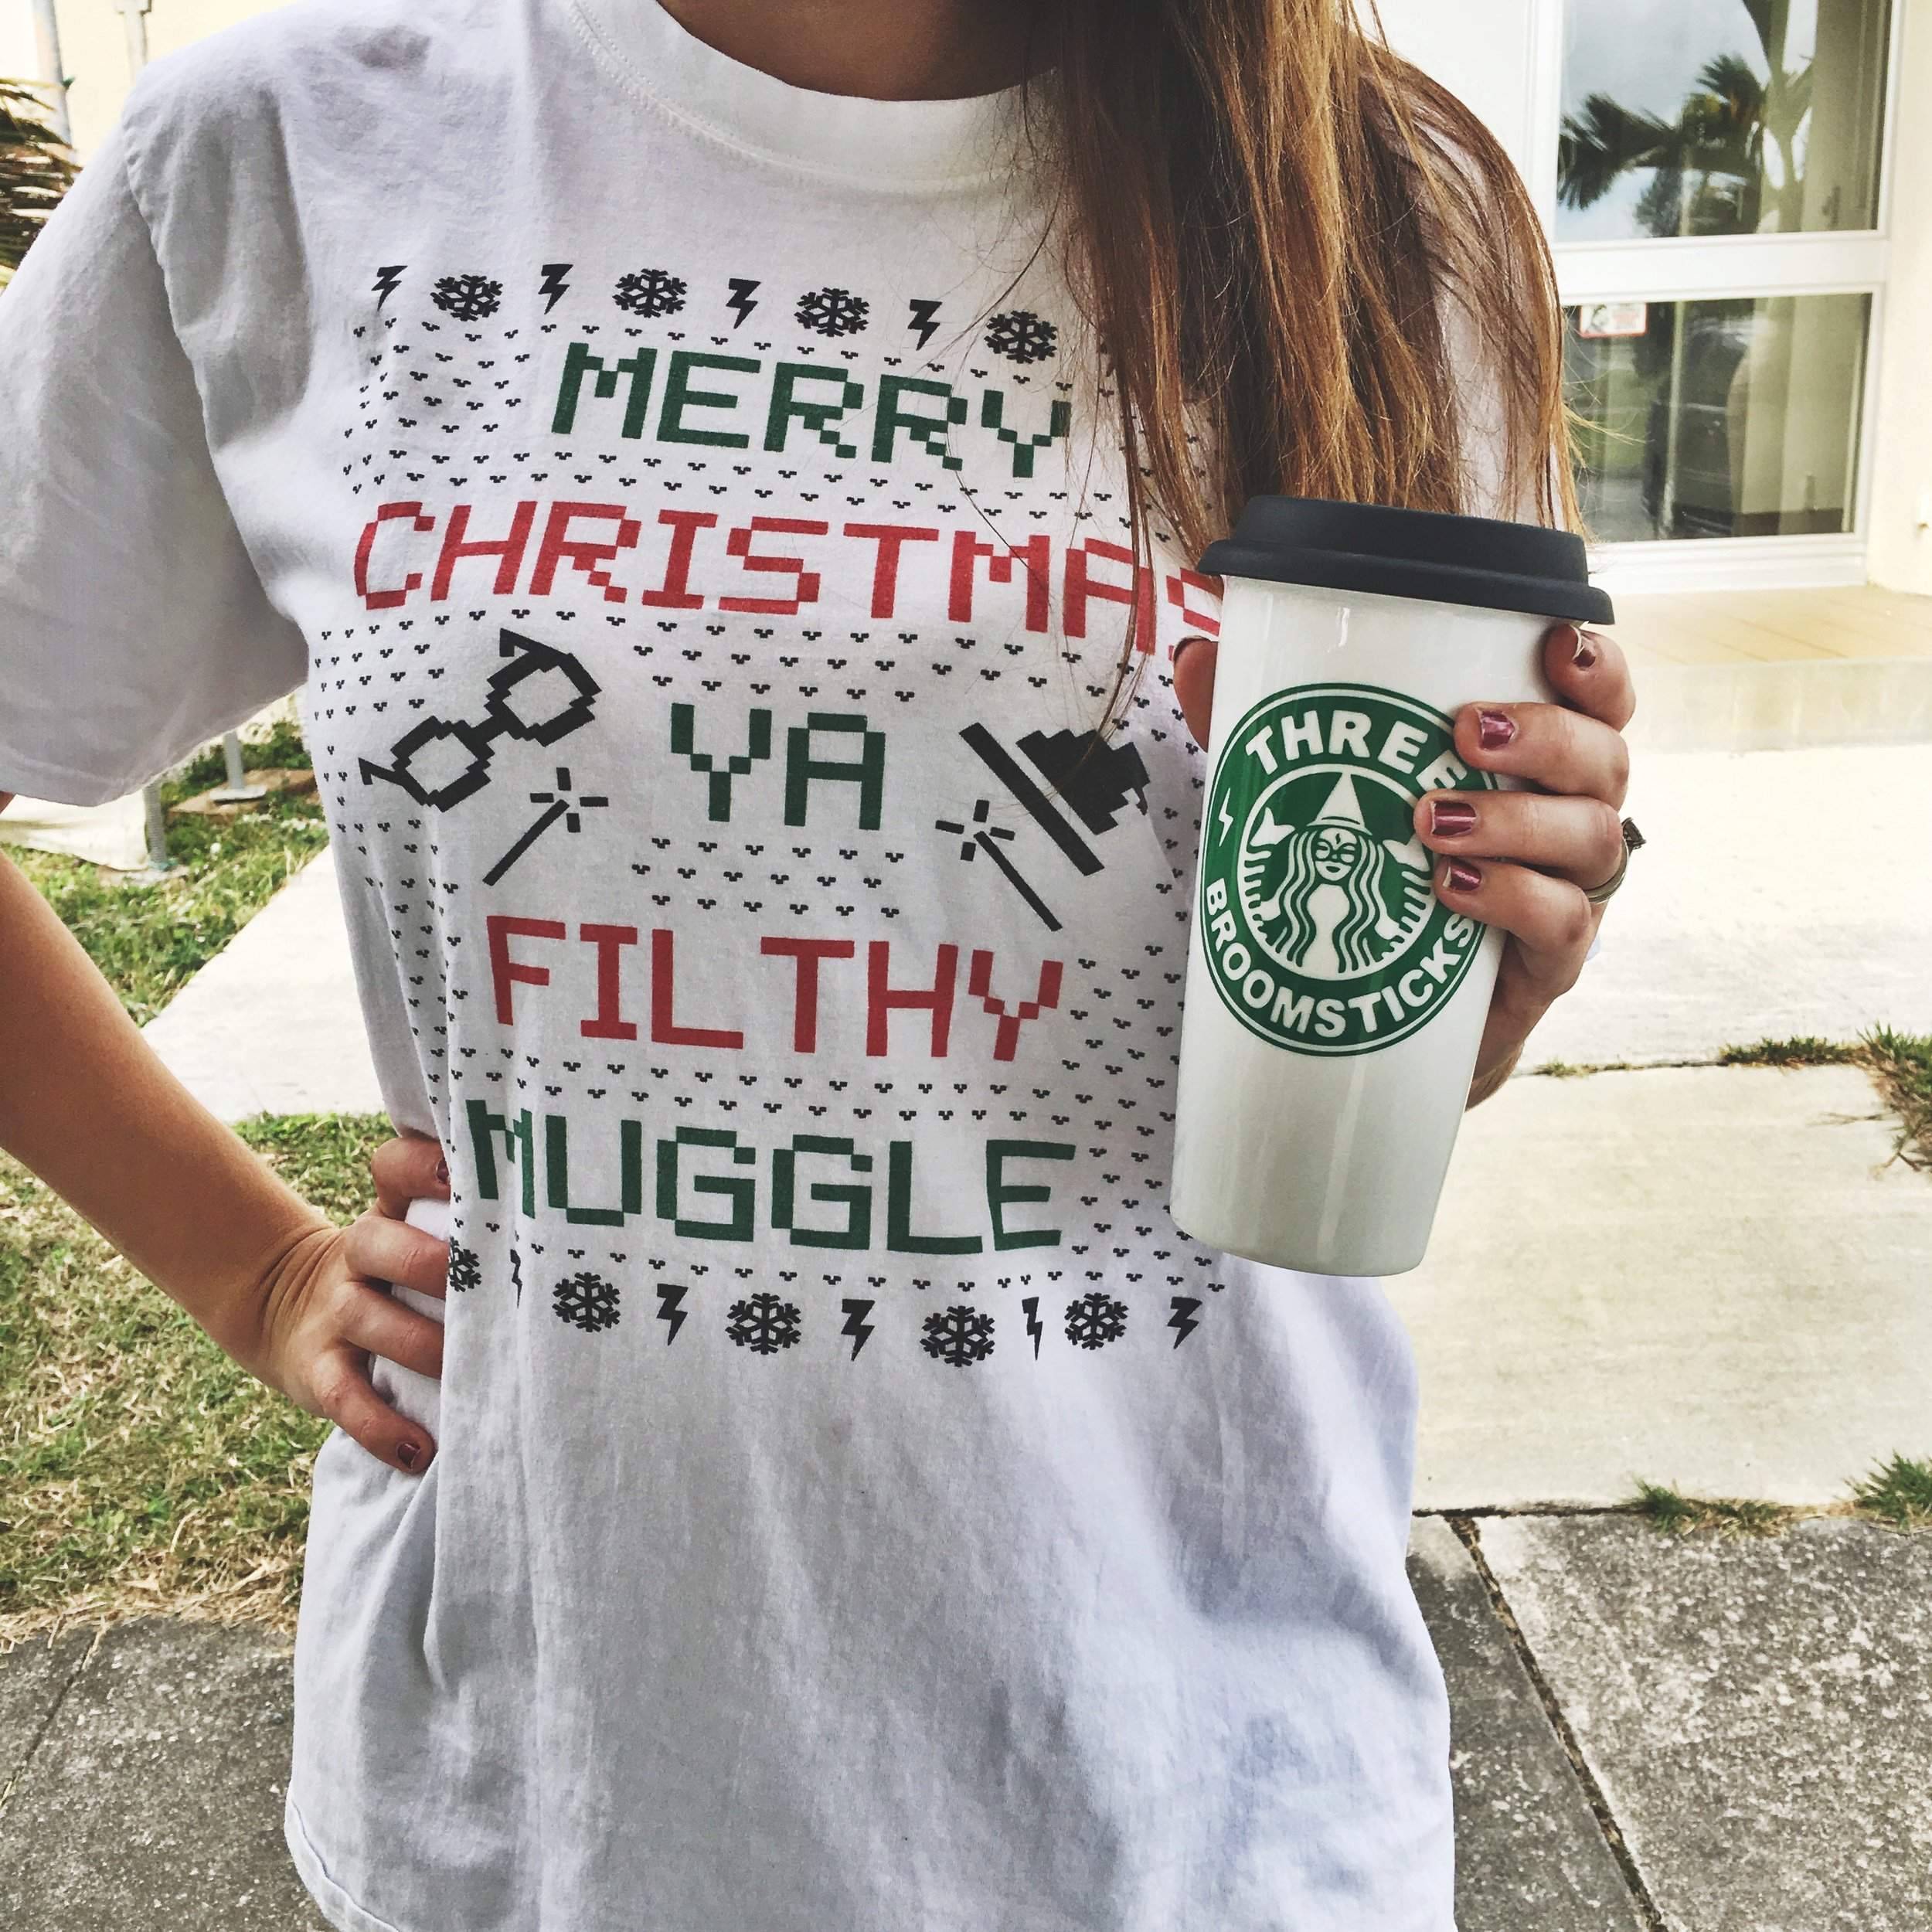 Merry Christmas ya filthy muggle shirt for a Potter party. // photo from mkkmdesigns.com